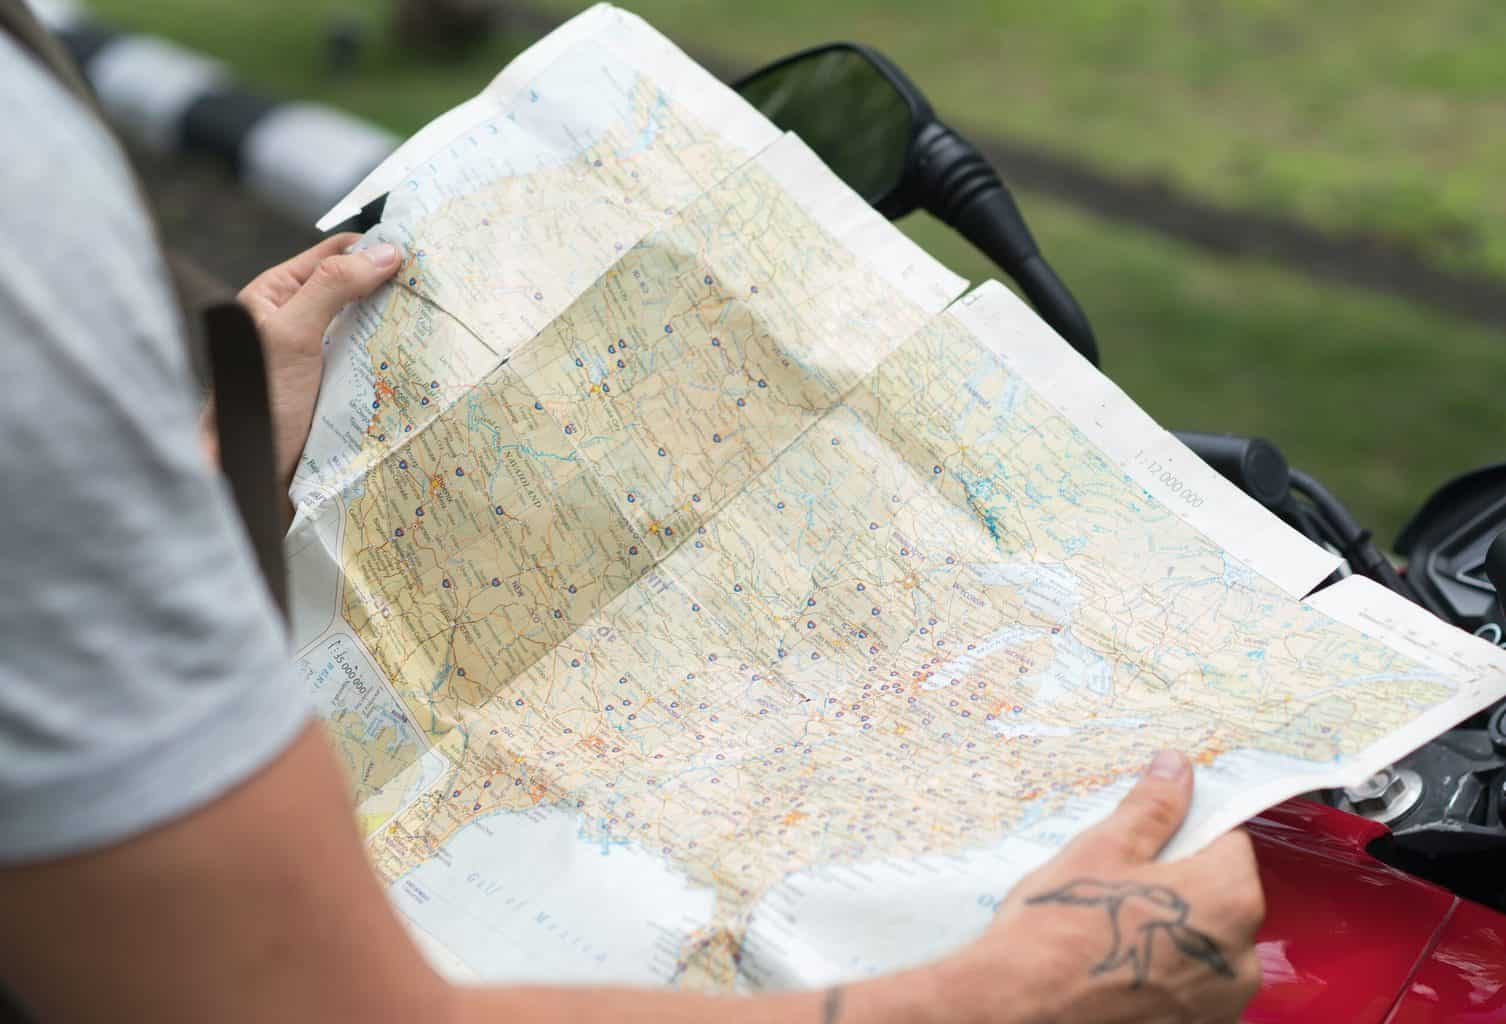 Holding and nagivating a map